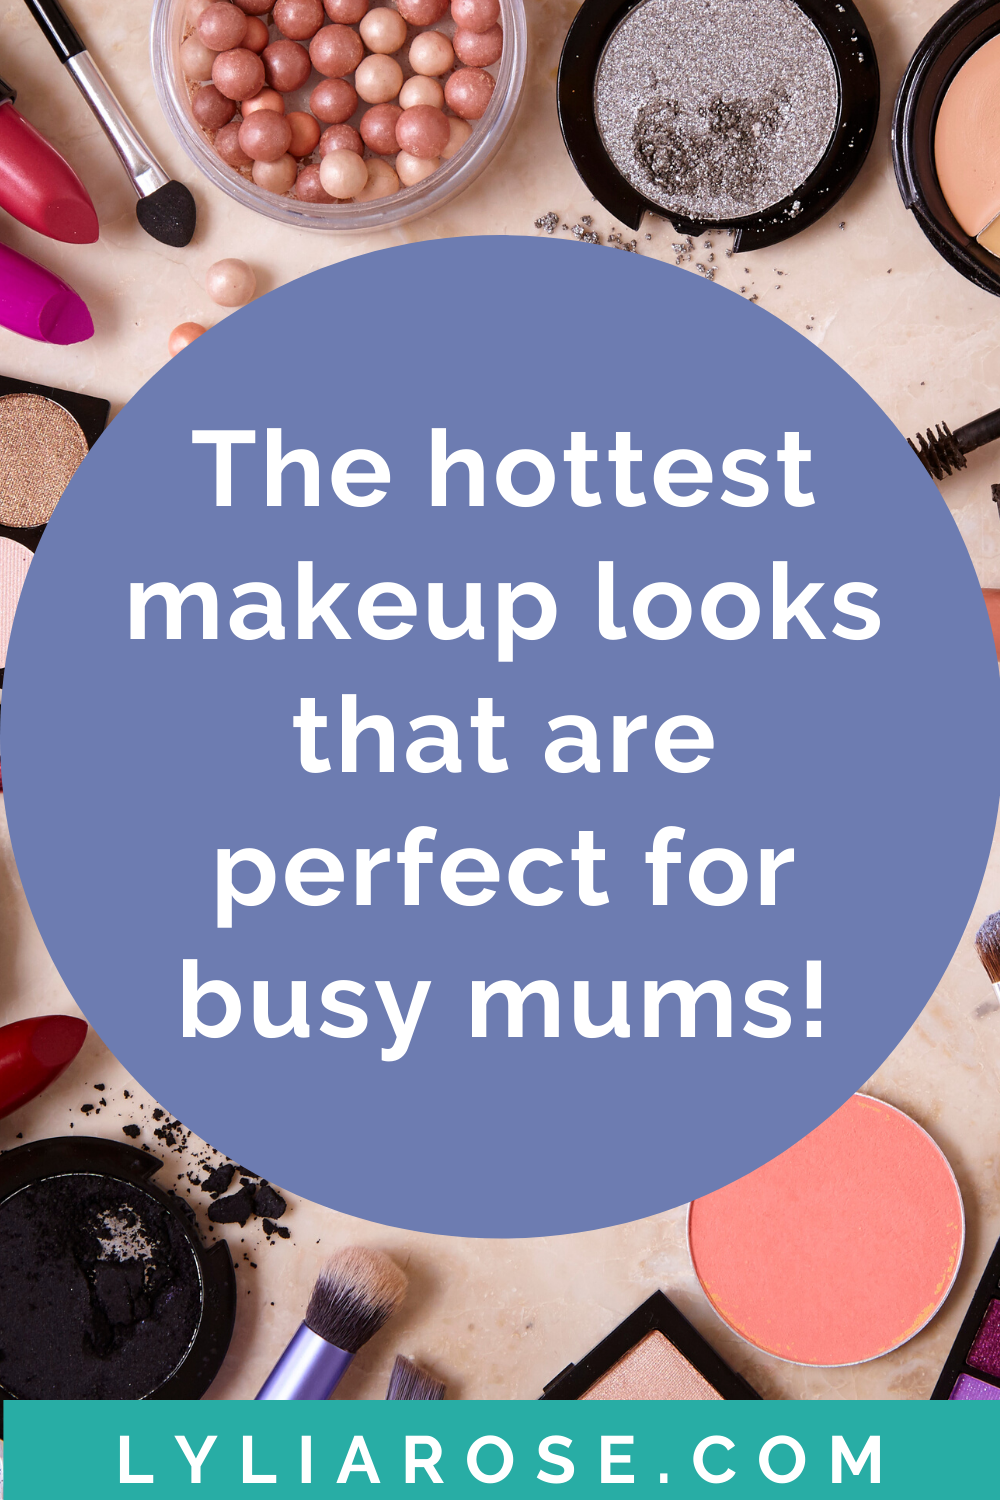 The hottest makeup looks for spring_summer that are perfect for busy mums!